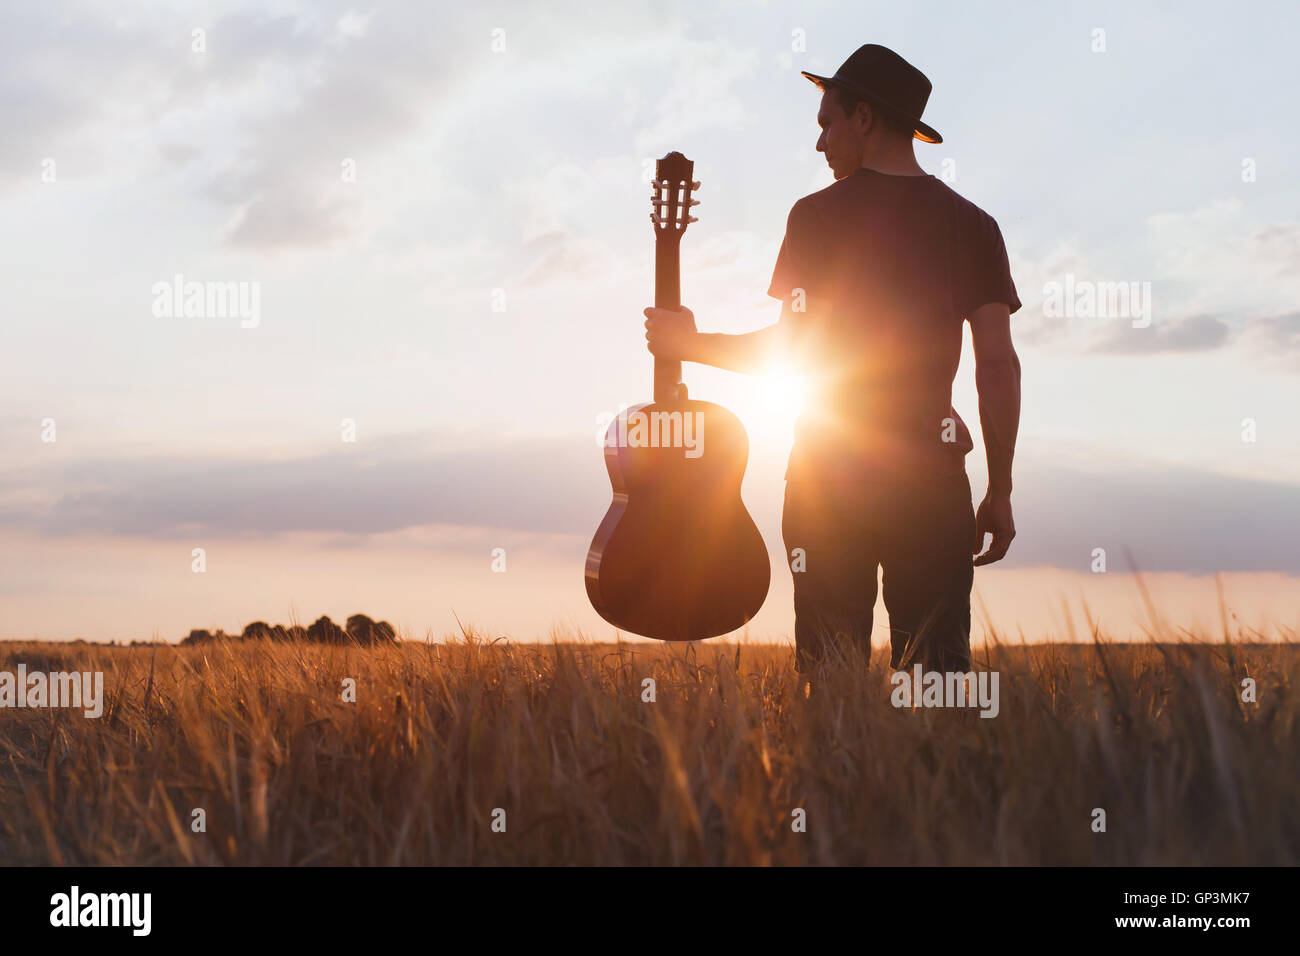 silhouette of musician with guitar at sunset field - Stock Image